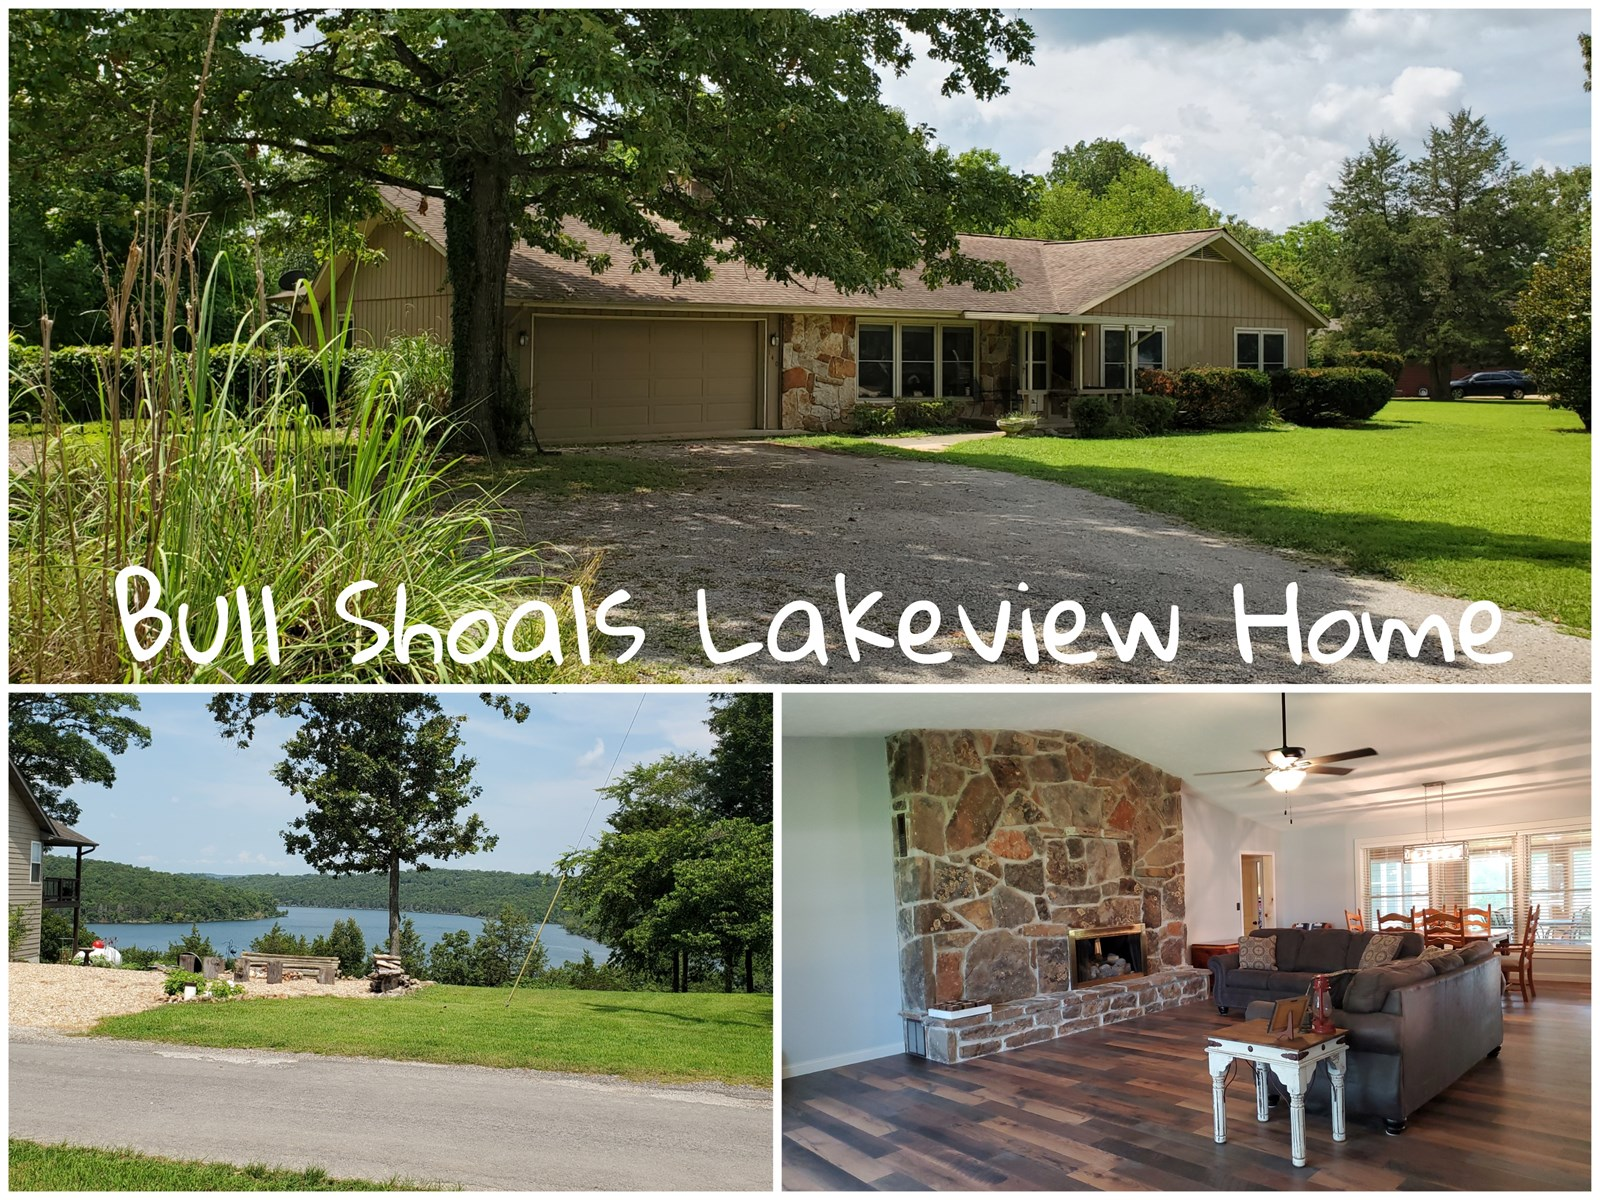 Lake View Home for Sale in Southern Missouri Ozarks